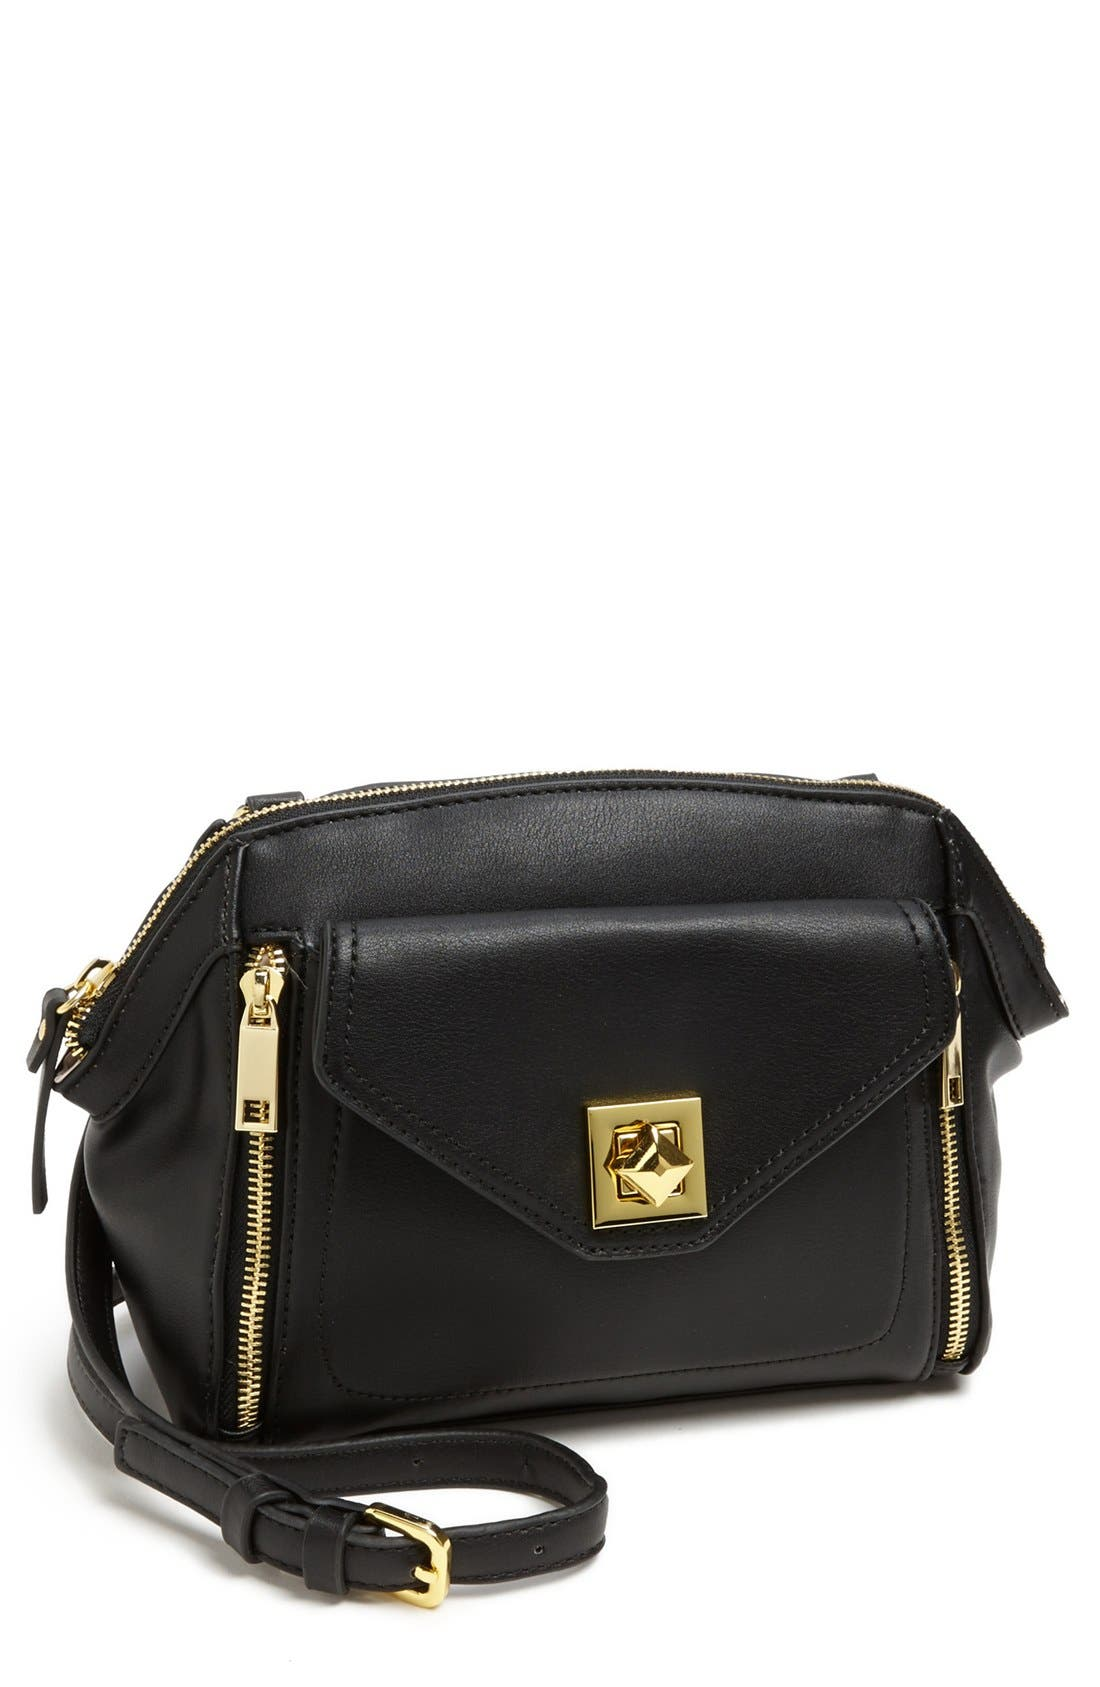 Alternate Image 1 Selected - Jessica Simpson 'Hadley' Crossbody Bag